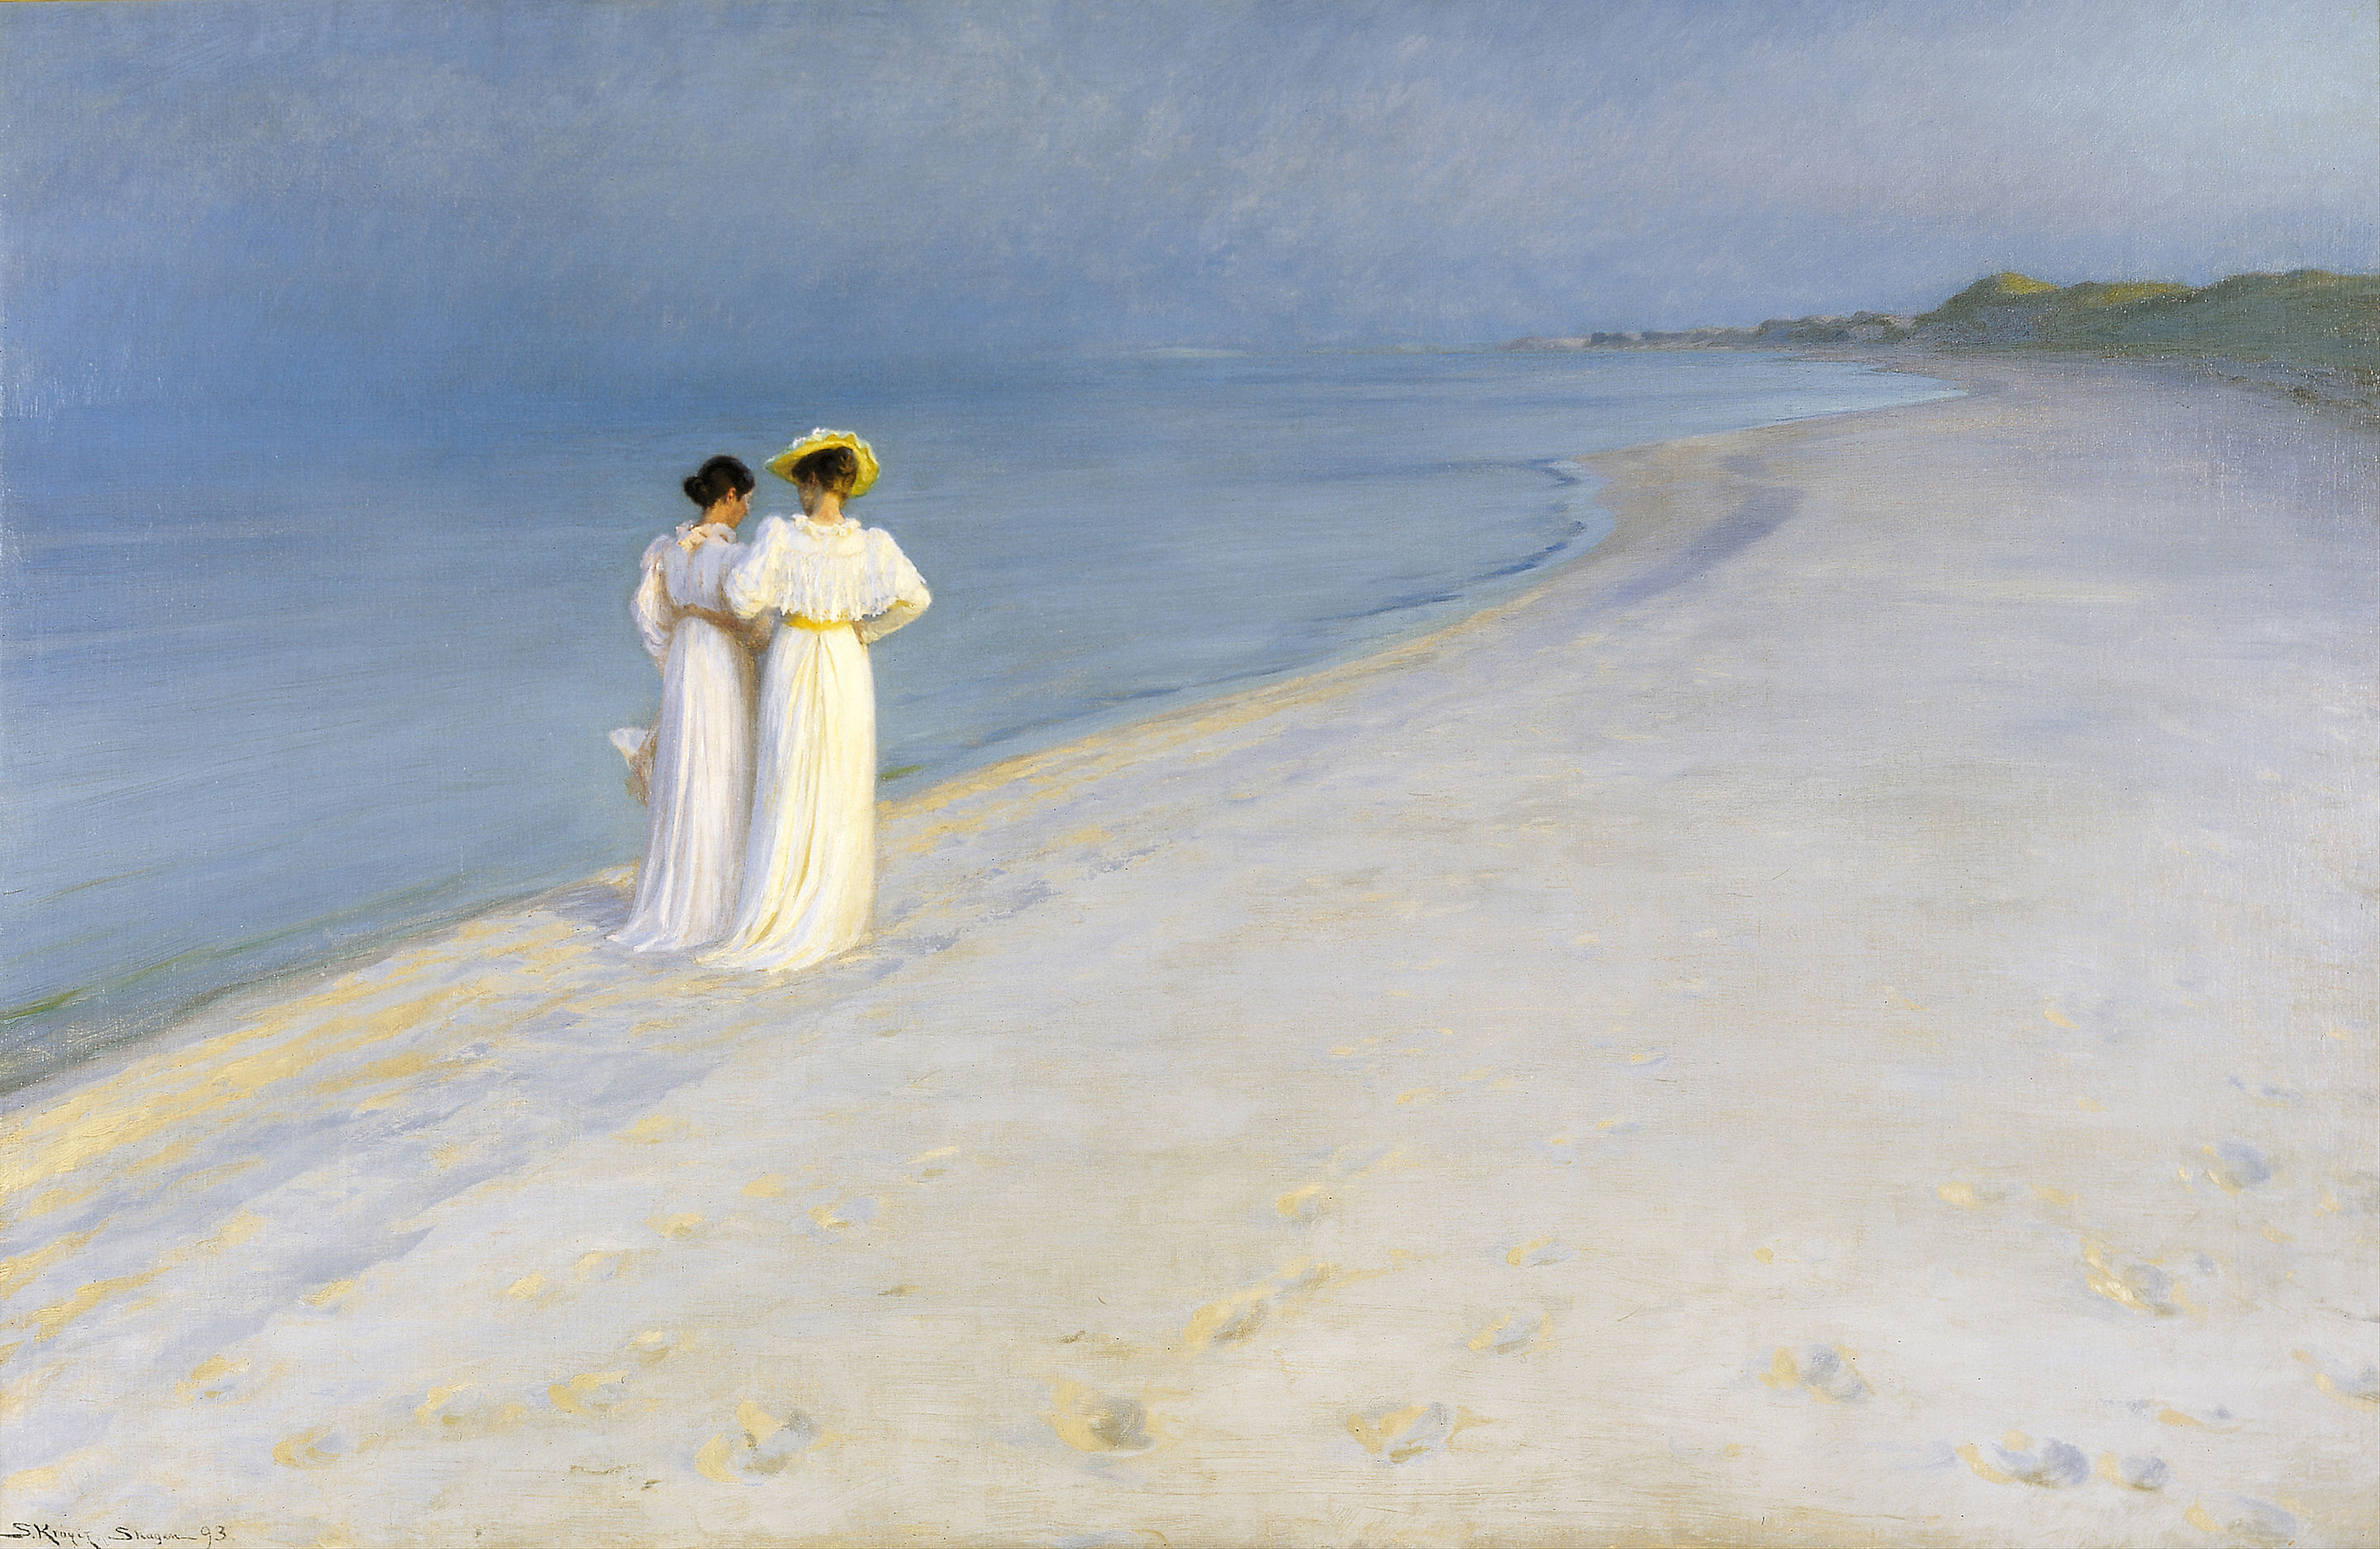 Summer Evening on Skagen's Southern Beach, by Peder Severin Krøyer, 1893